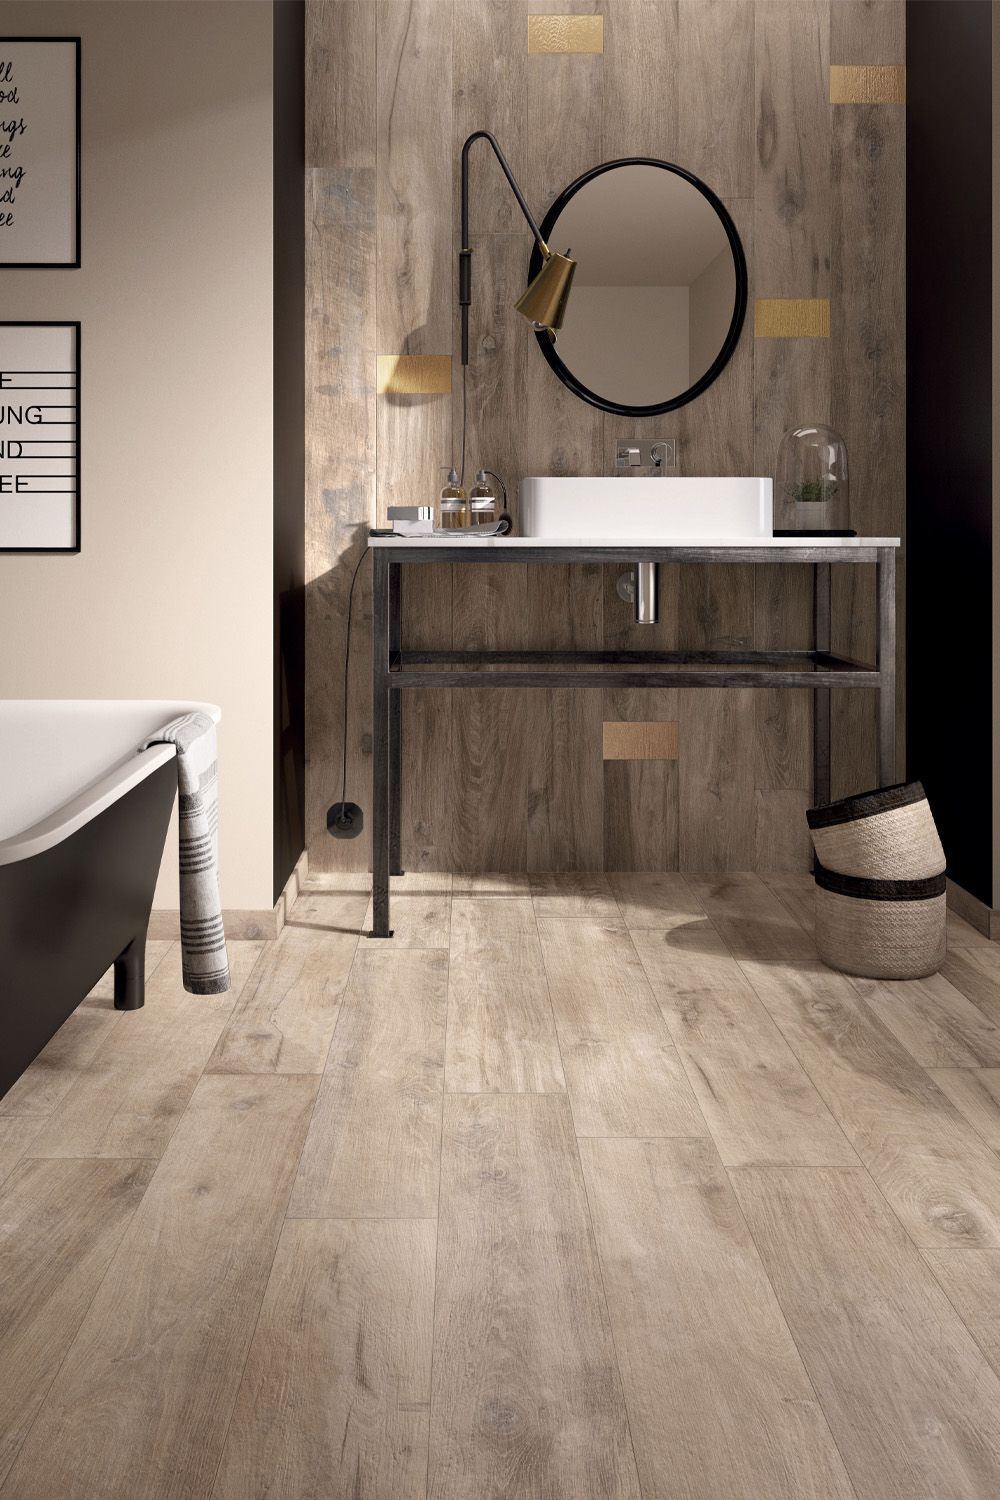 New Now Light Hardwood Floors In 2020 Wood Tile Bathroom Wood Tile Bathroom Floor Bathroom Floor Tiles